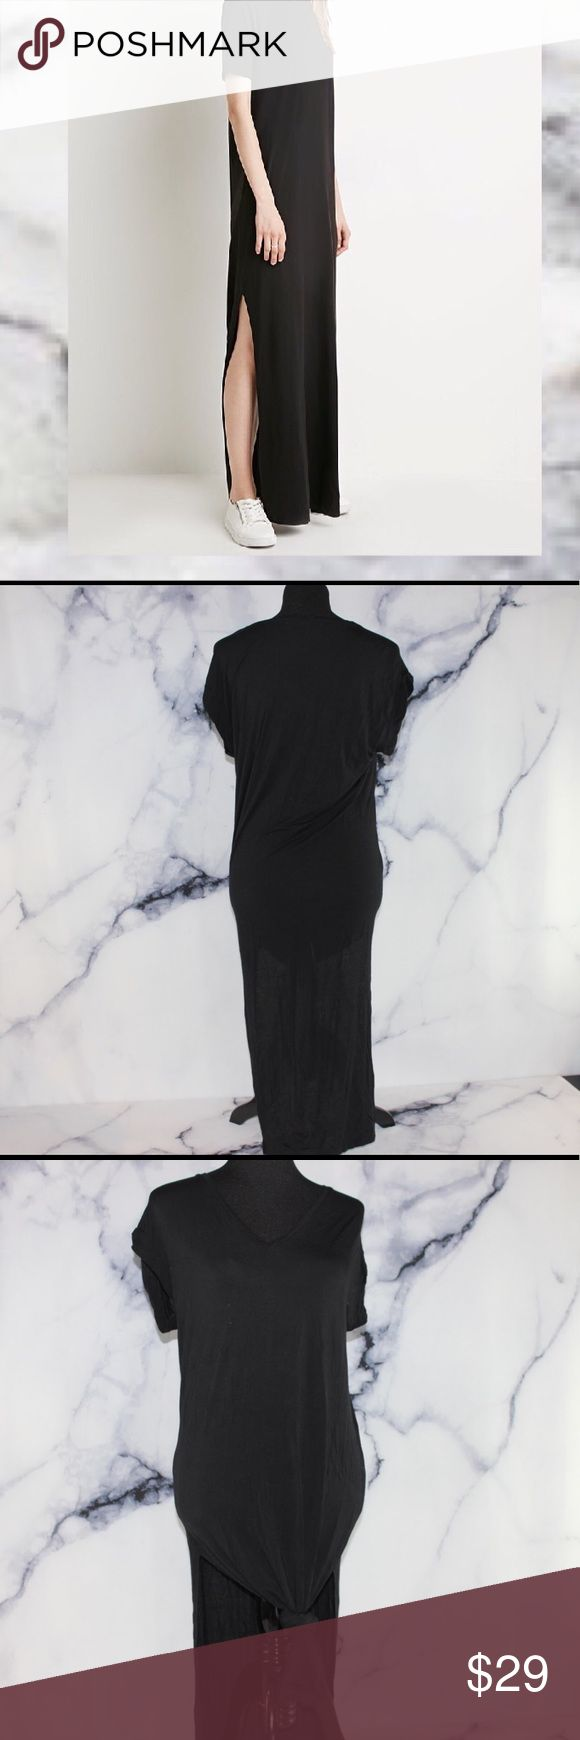 Zara V Neck T Shirt Dress Dual Slits S Condition: USED Stretch: MODERATE Piling or Flaws:  N/A 🖤I accept only serious offers of over 50% of my asking price🖤 Zara Dresses Maxi